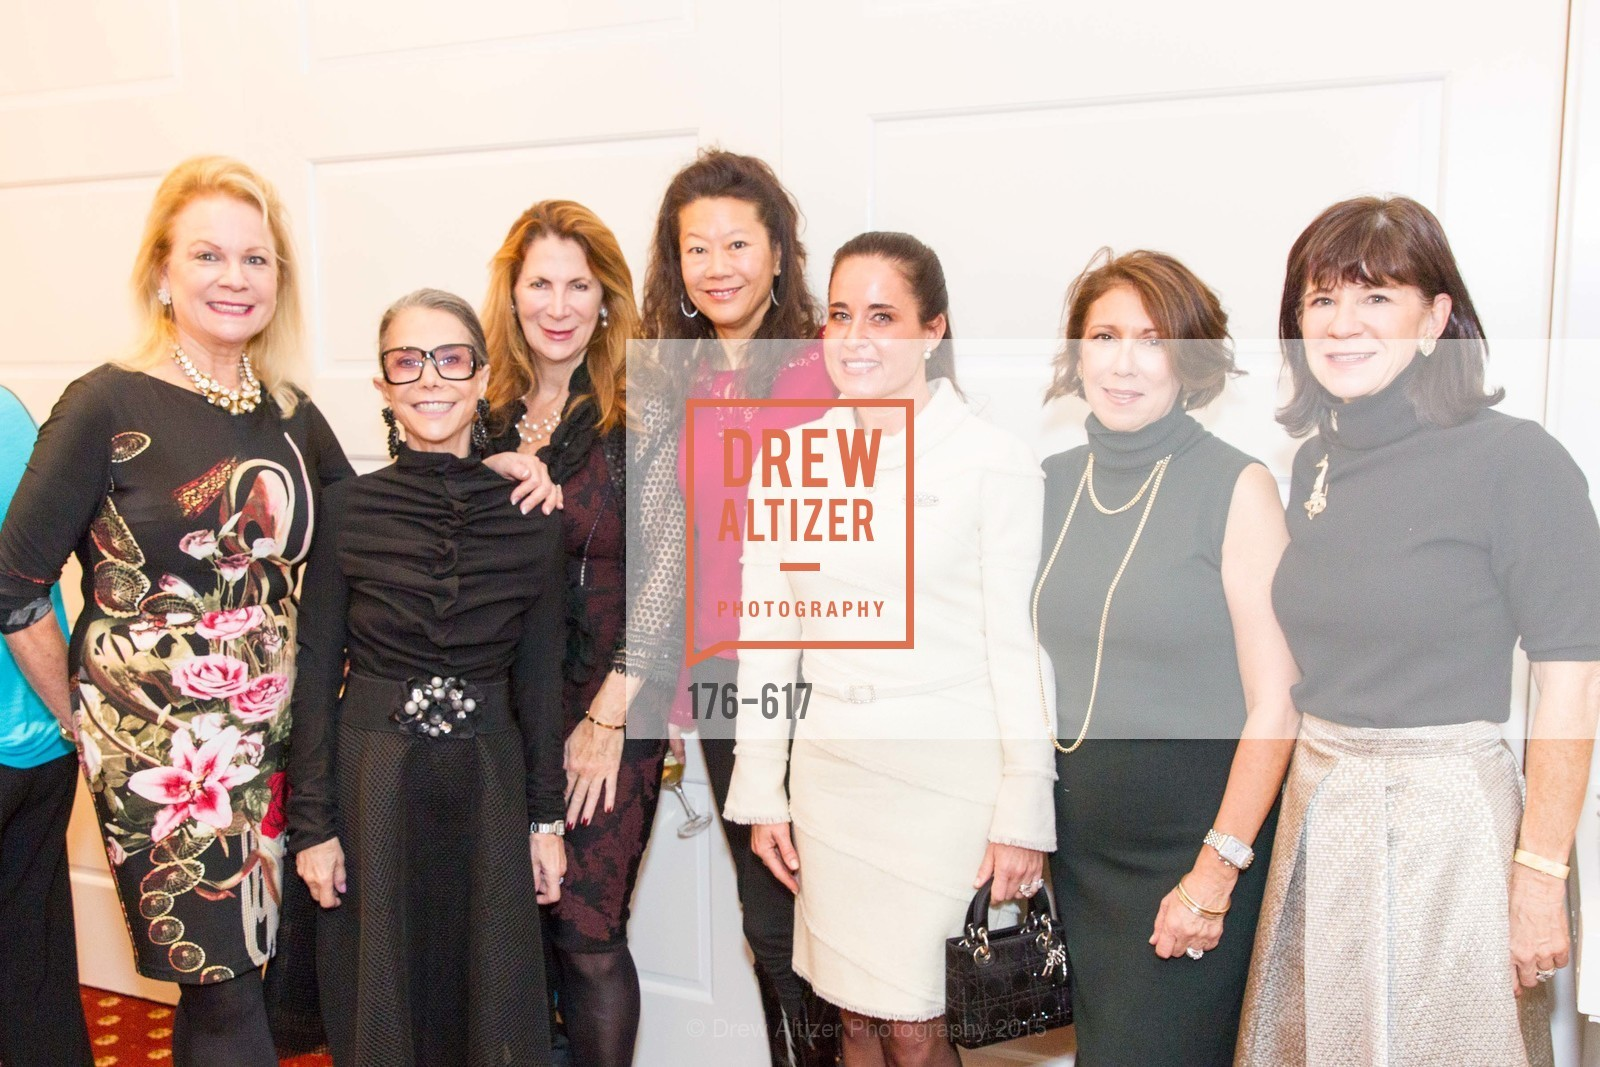 Claire Kostic, Julie Coplon, Patricia Ferrin Loucks, Michelle Helm, Natalia Urrutia, Cynthia Karasik, Pam McBain, Boy's & Girls' Towns of Italy Holiday Luncheon, The Olympic Club. 524 Post Street, December 3rd, 2015,Drew Altizer, Drew Altizer Photography, full-service agency, private events, San Francisco photographer, photographer california